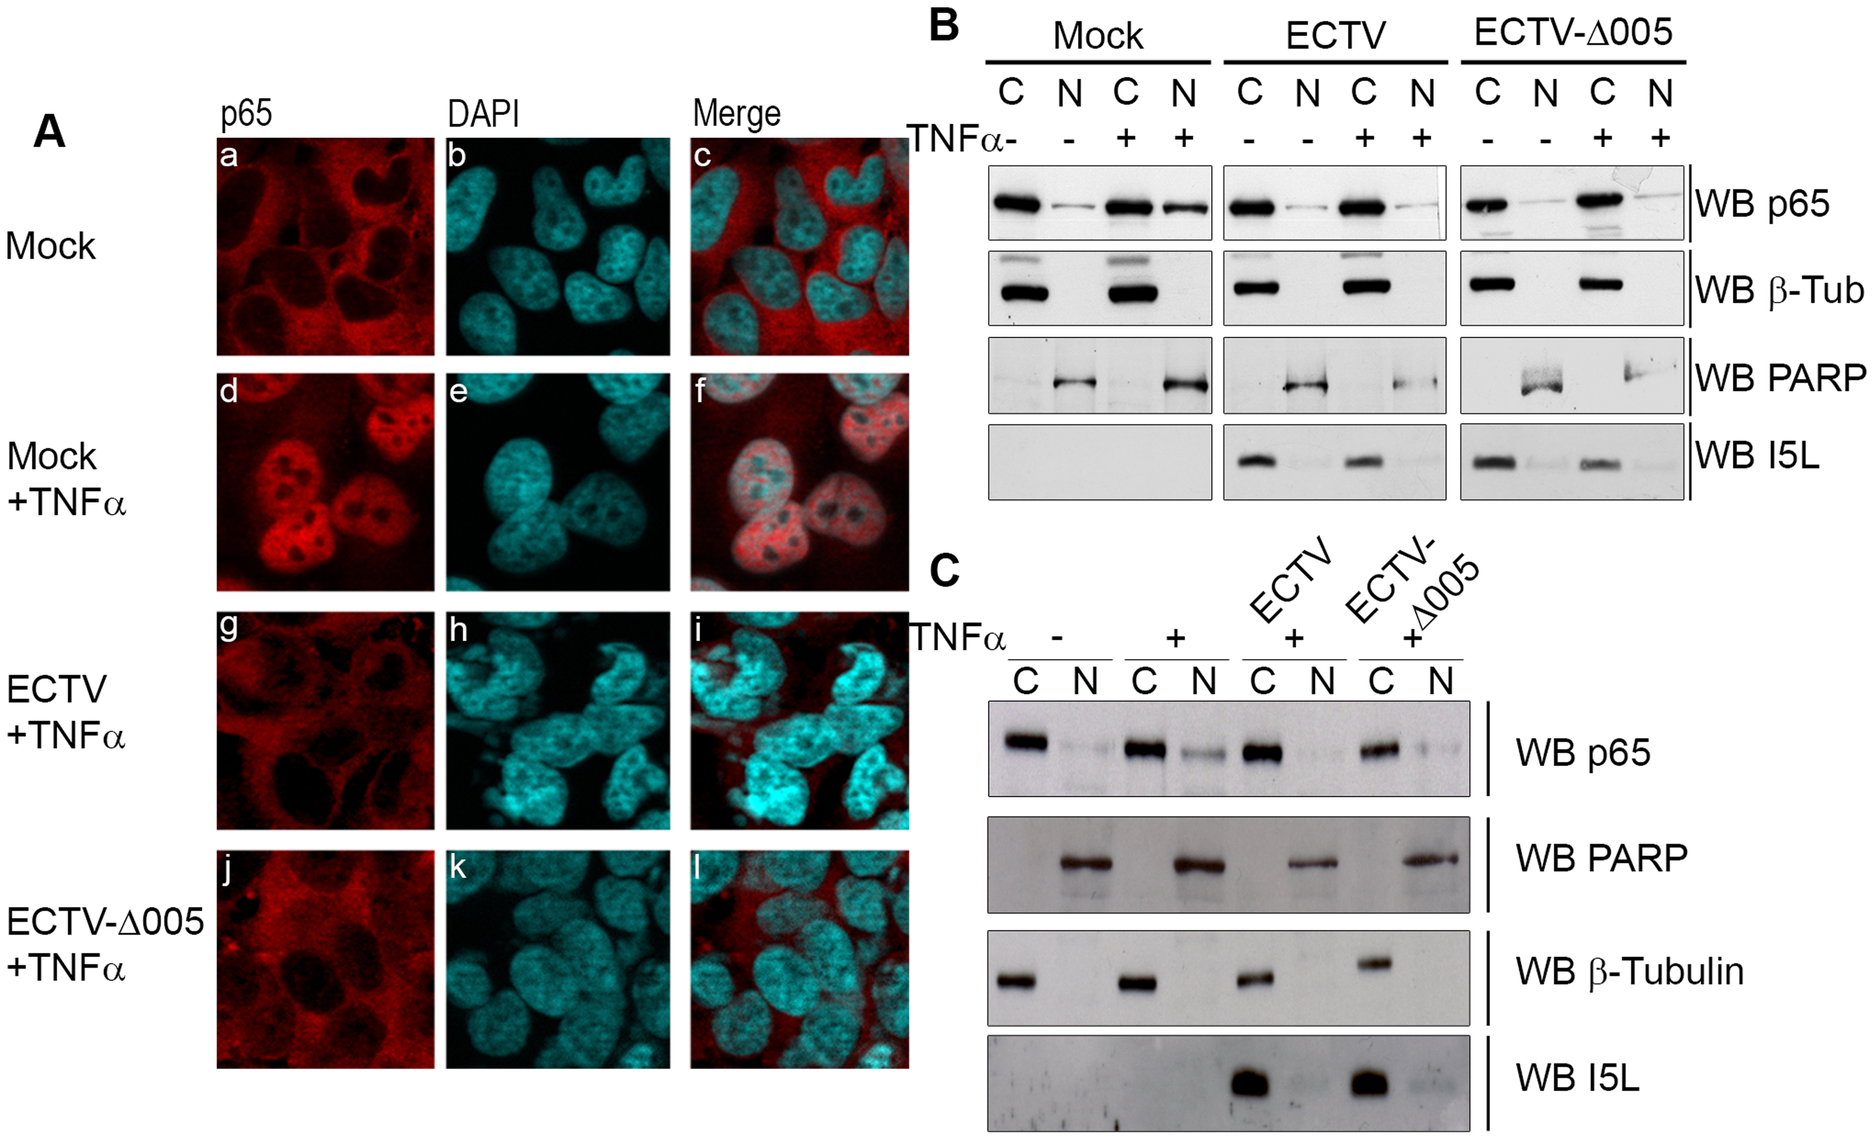 ECTV-Δ005 still inhibits p65 nuclear accumulation.